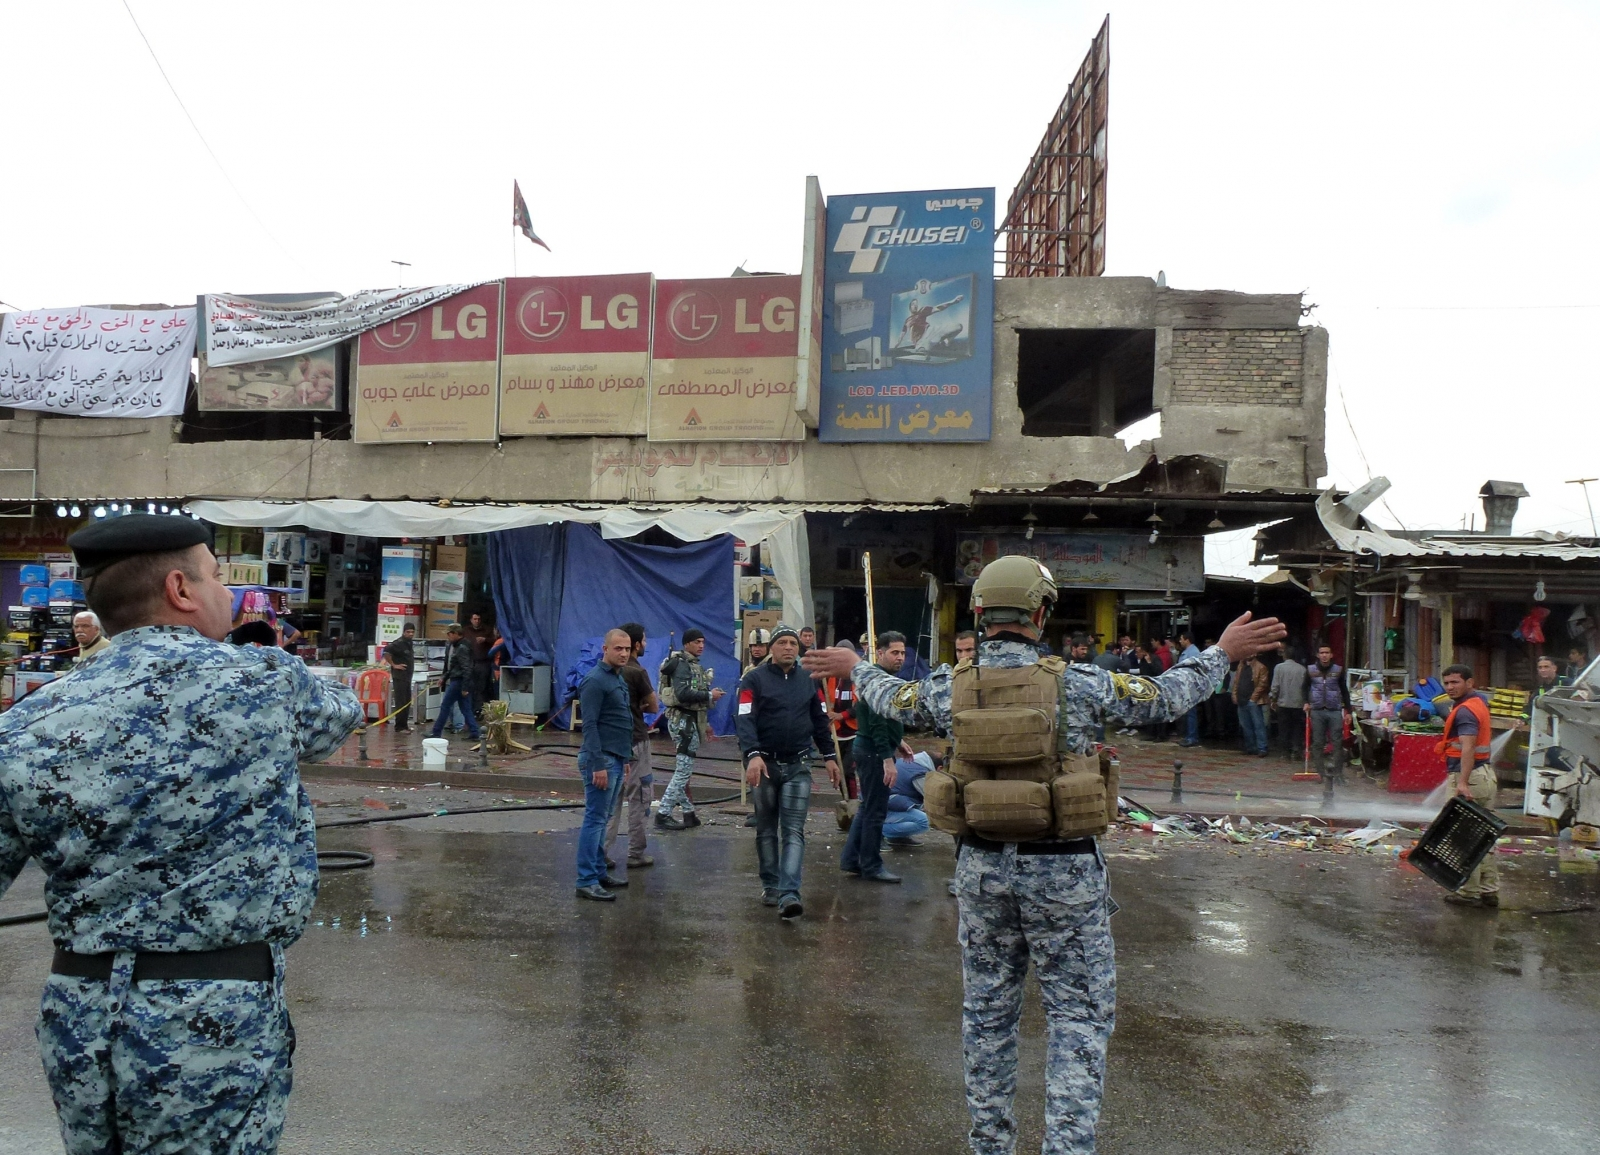 Iraqi police clear pedestrians of a street after a suicide bomber detonated explosives inside a restaurant in Baghdad al-Jadida, east of the capital,